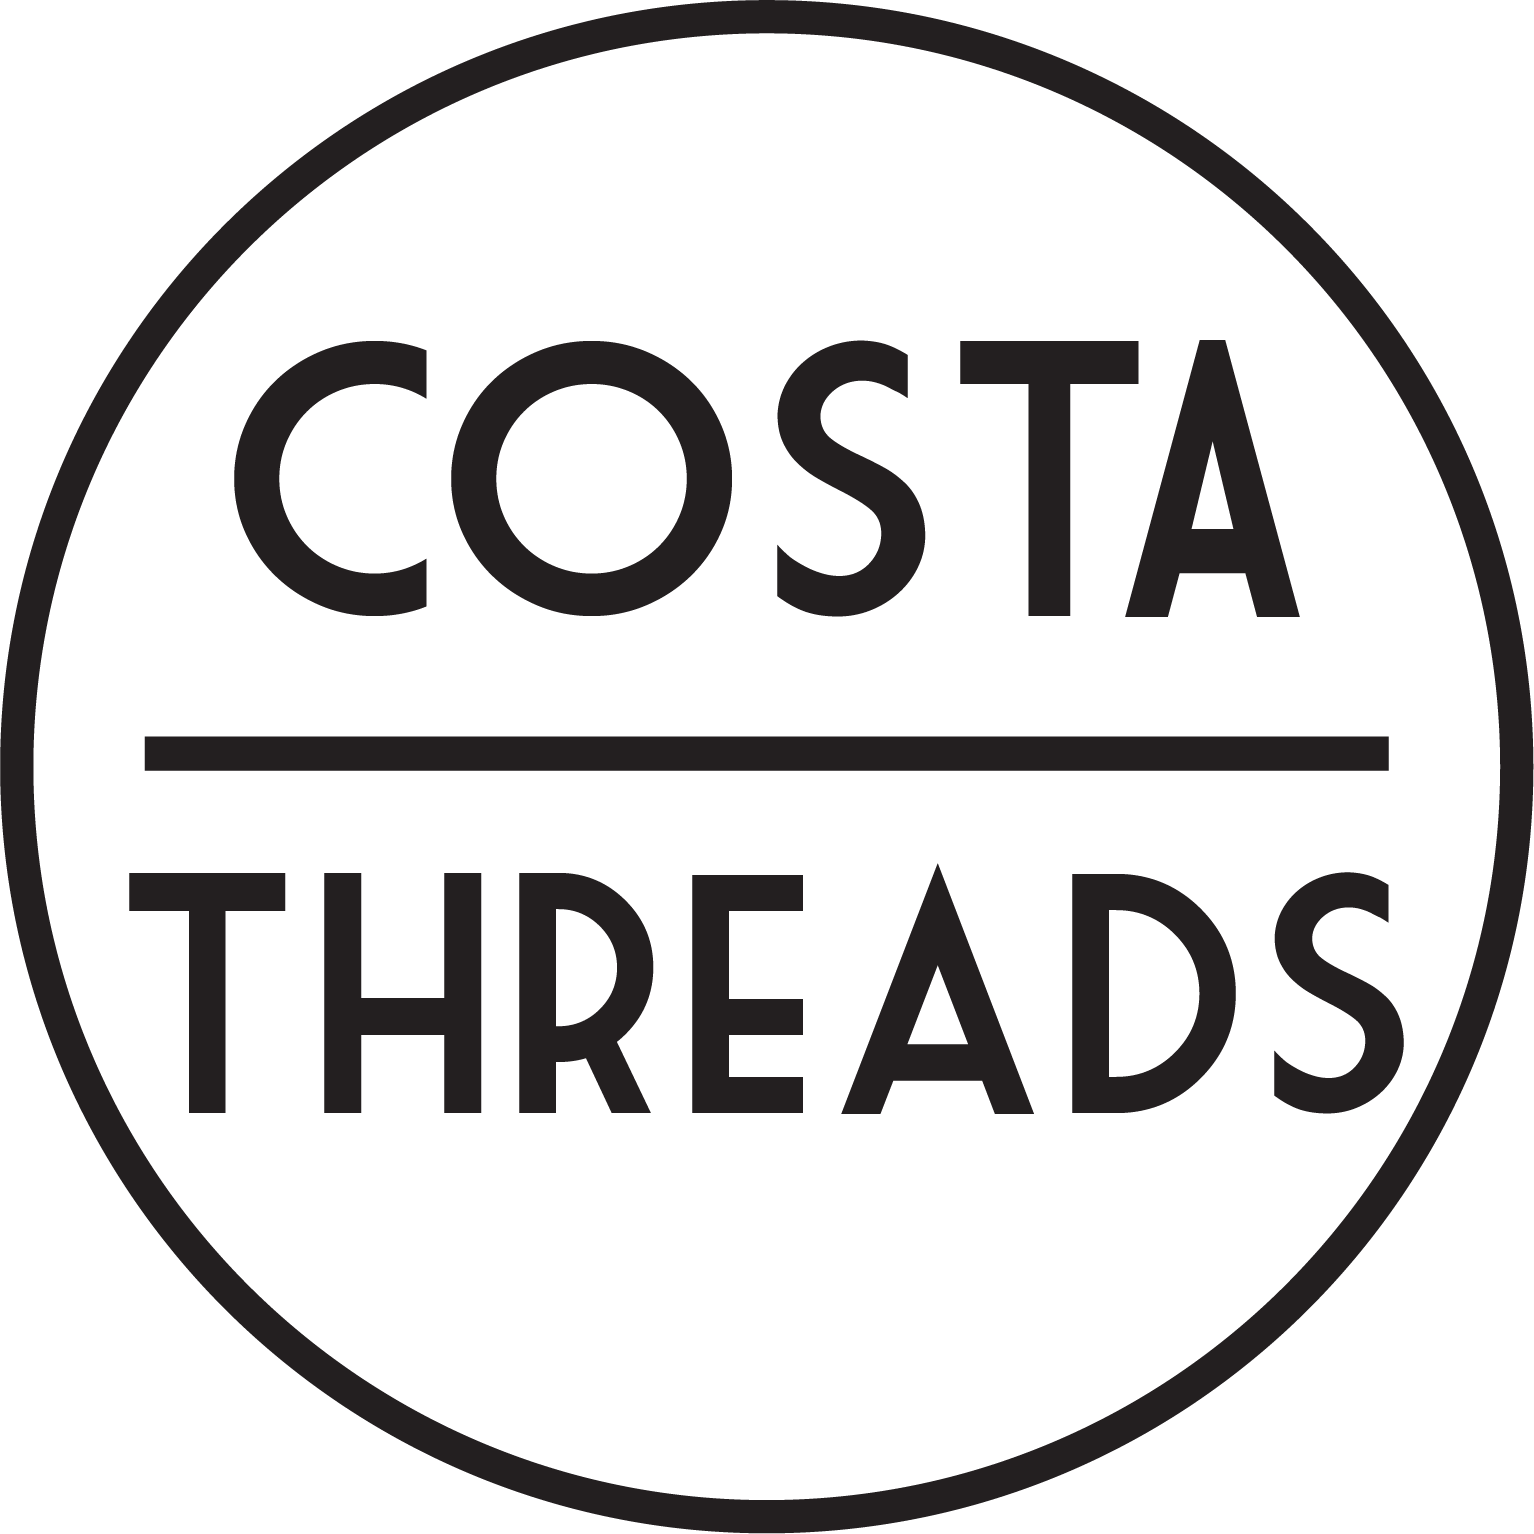 Costa Threads - The Boutique Hub